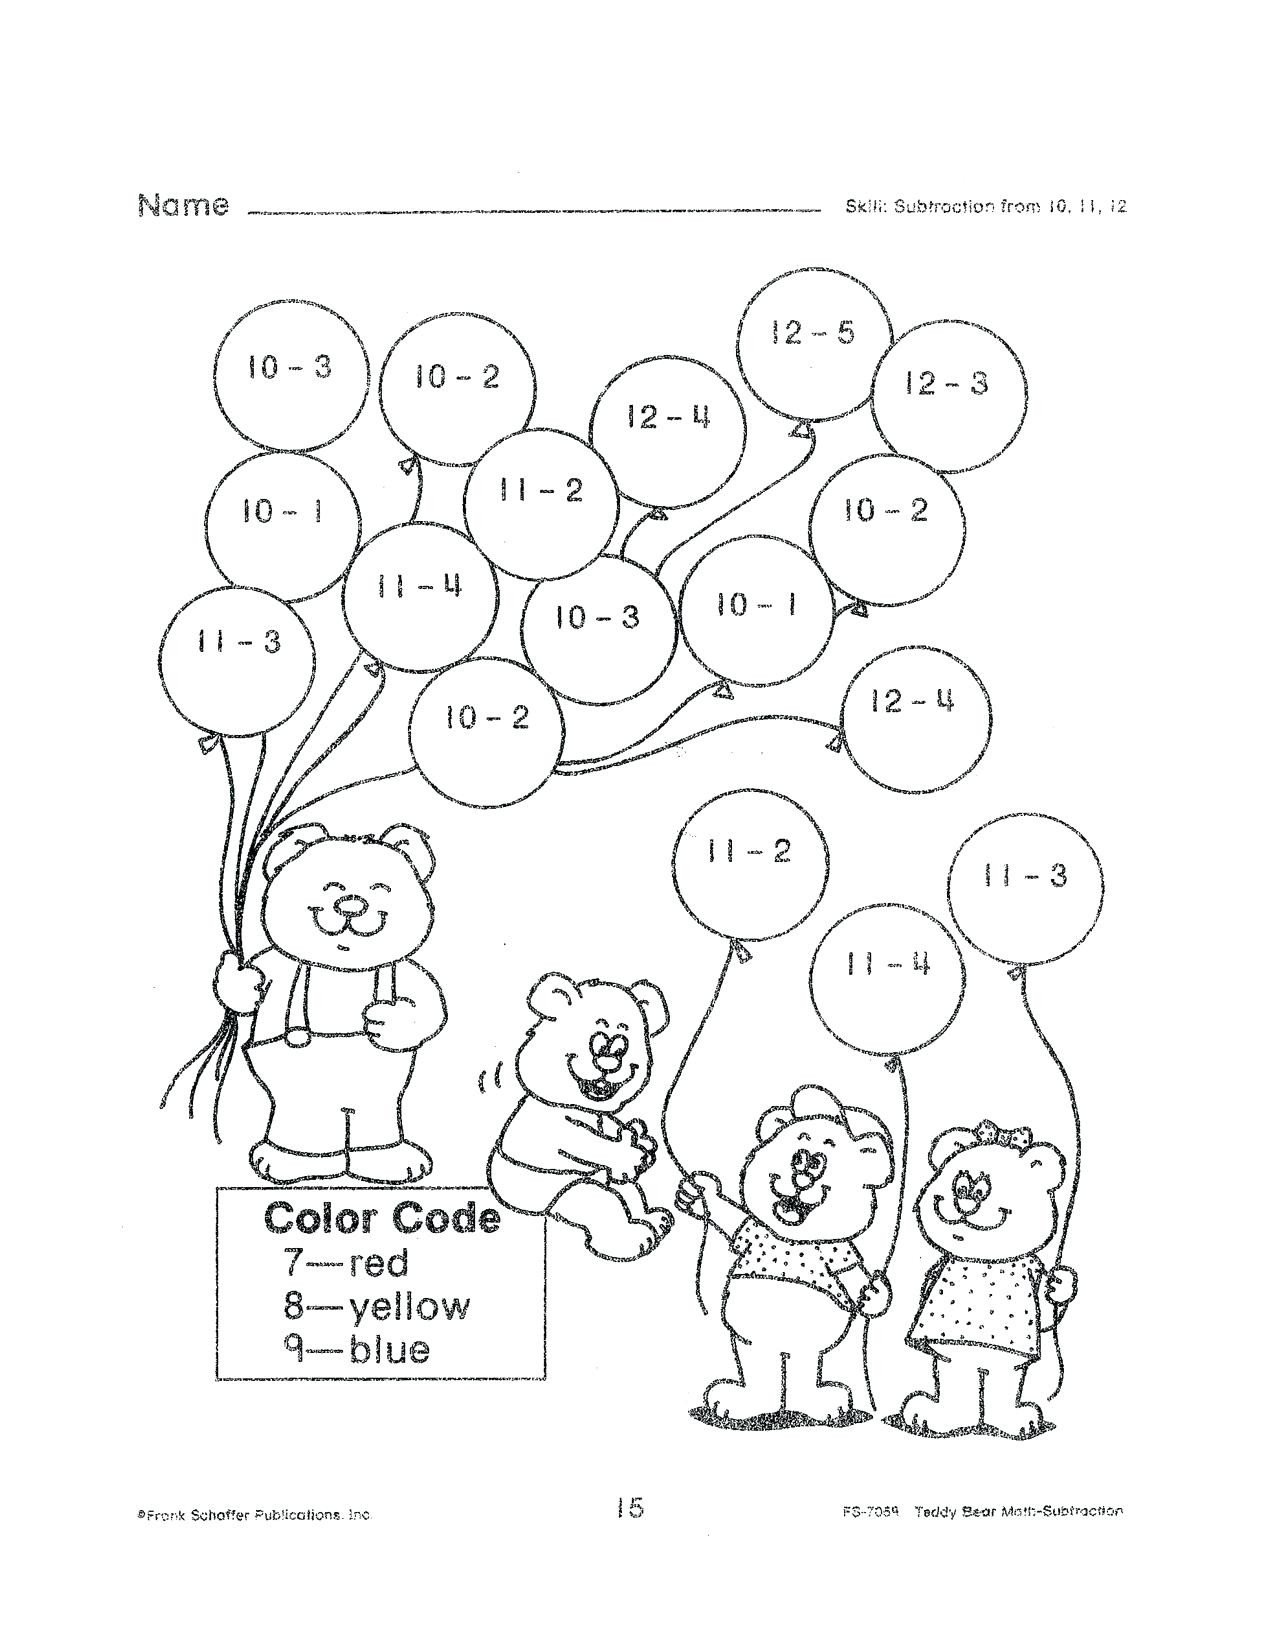 Science Worksheet 1st Grade 1st Grade Science Worksheet Printable Worksheets and